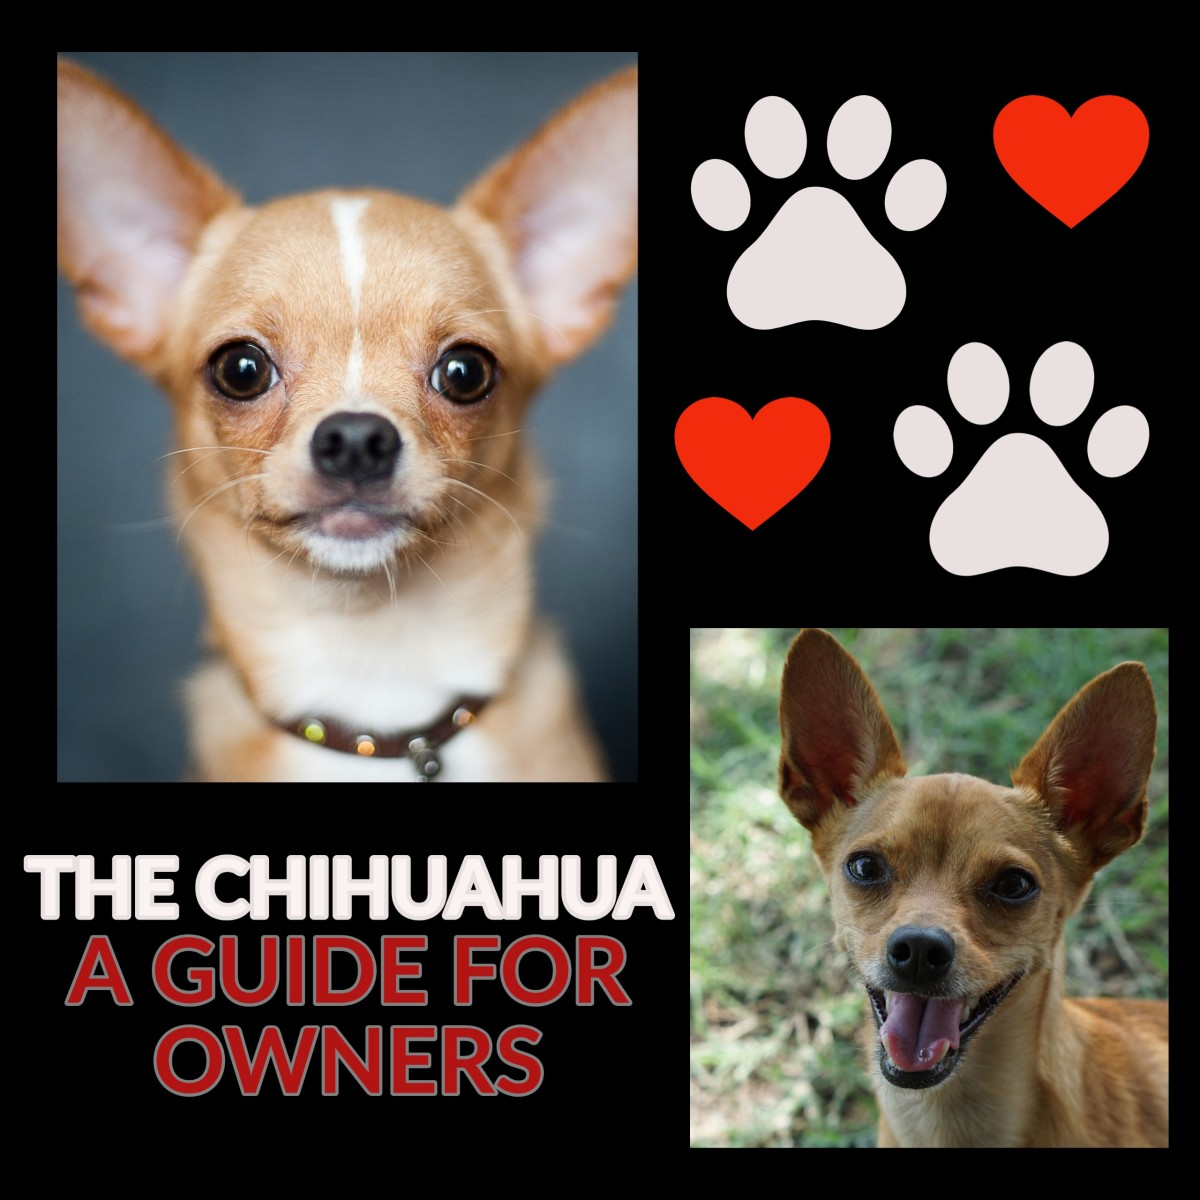 The Chihuahua: A Guide for Owners